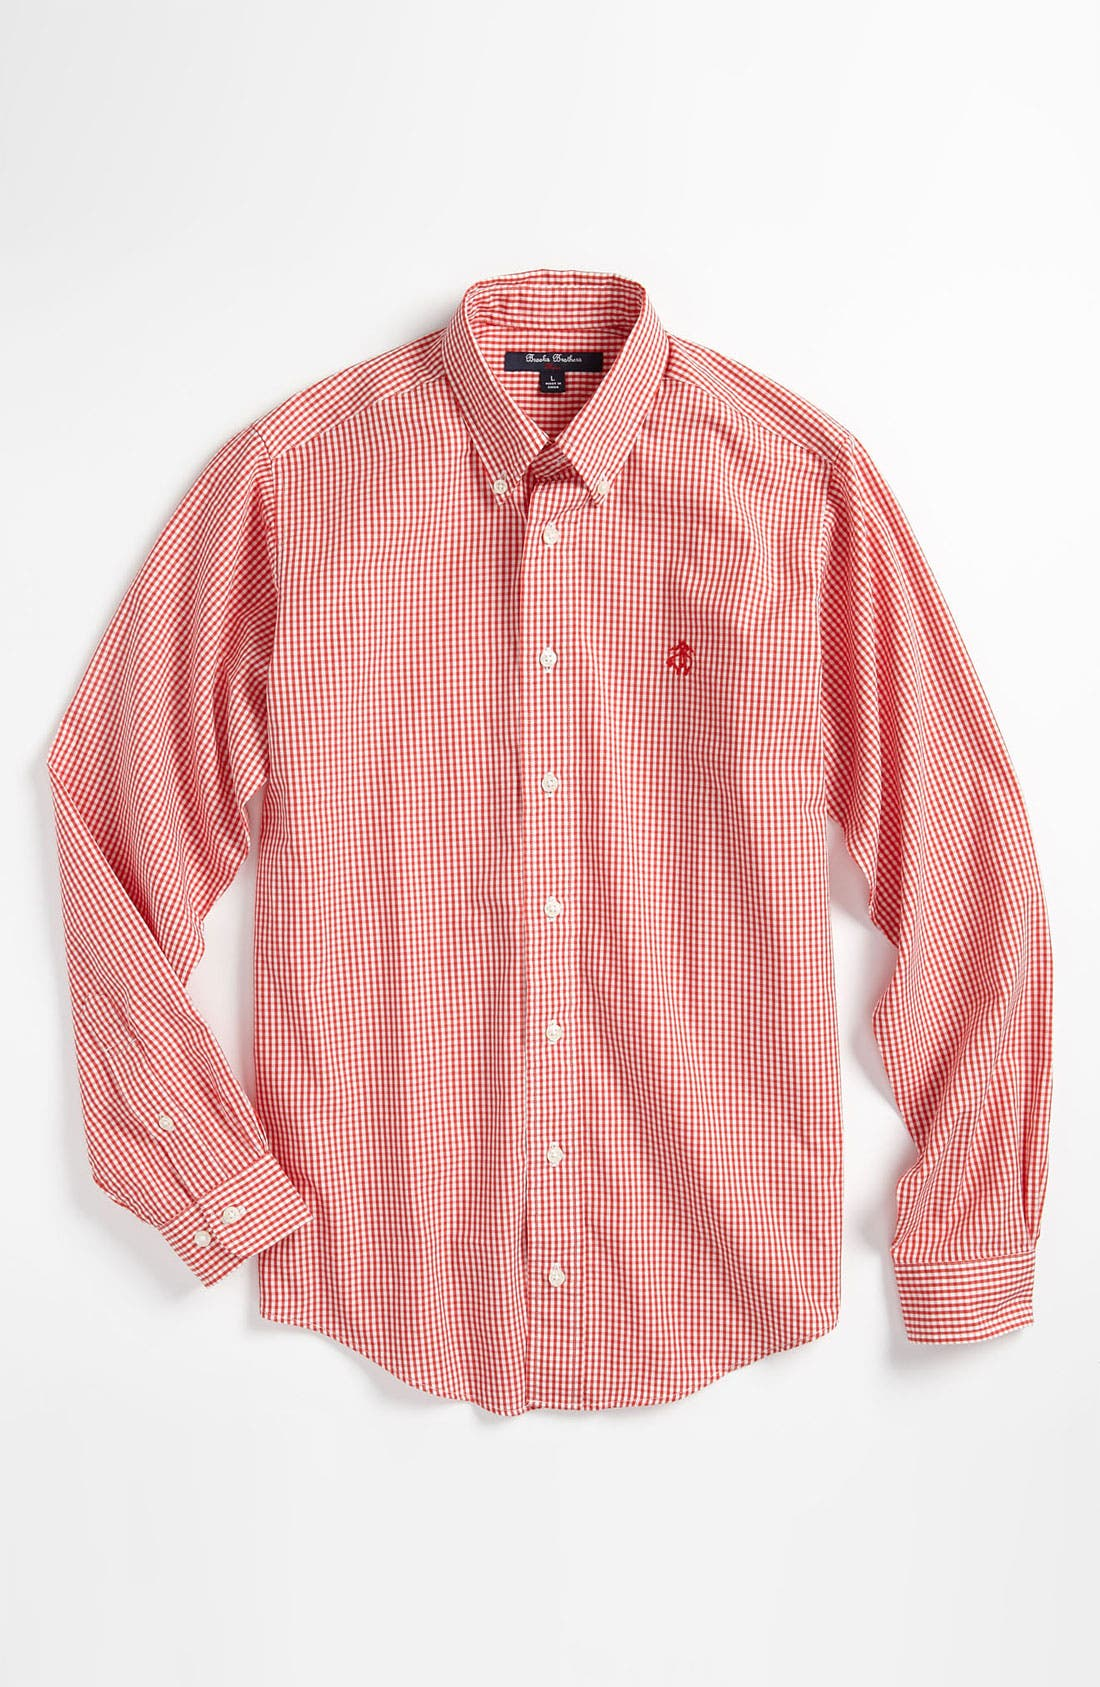 Alternate Image 1 Selected - Brooks Brothers Sport Shirt (Big Boys)